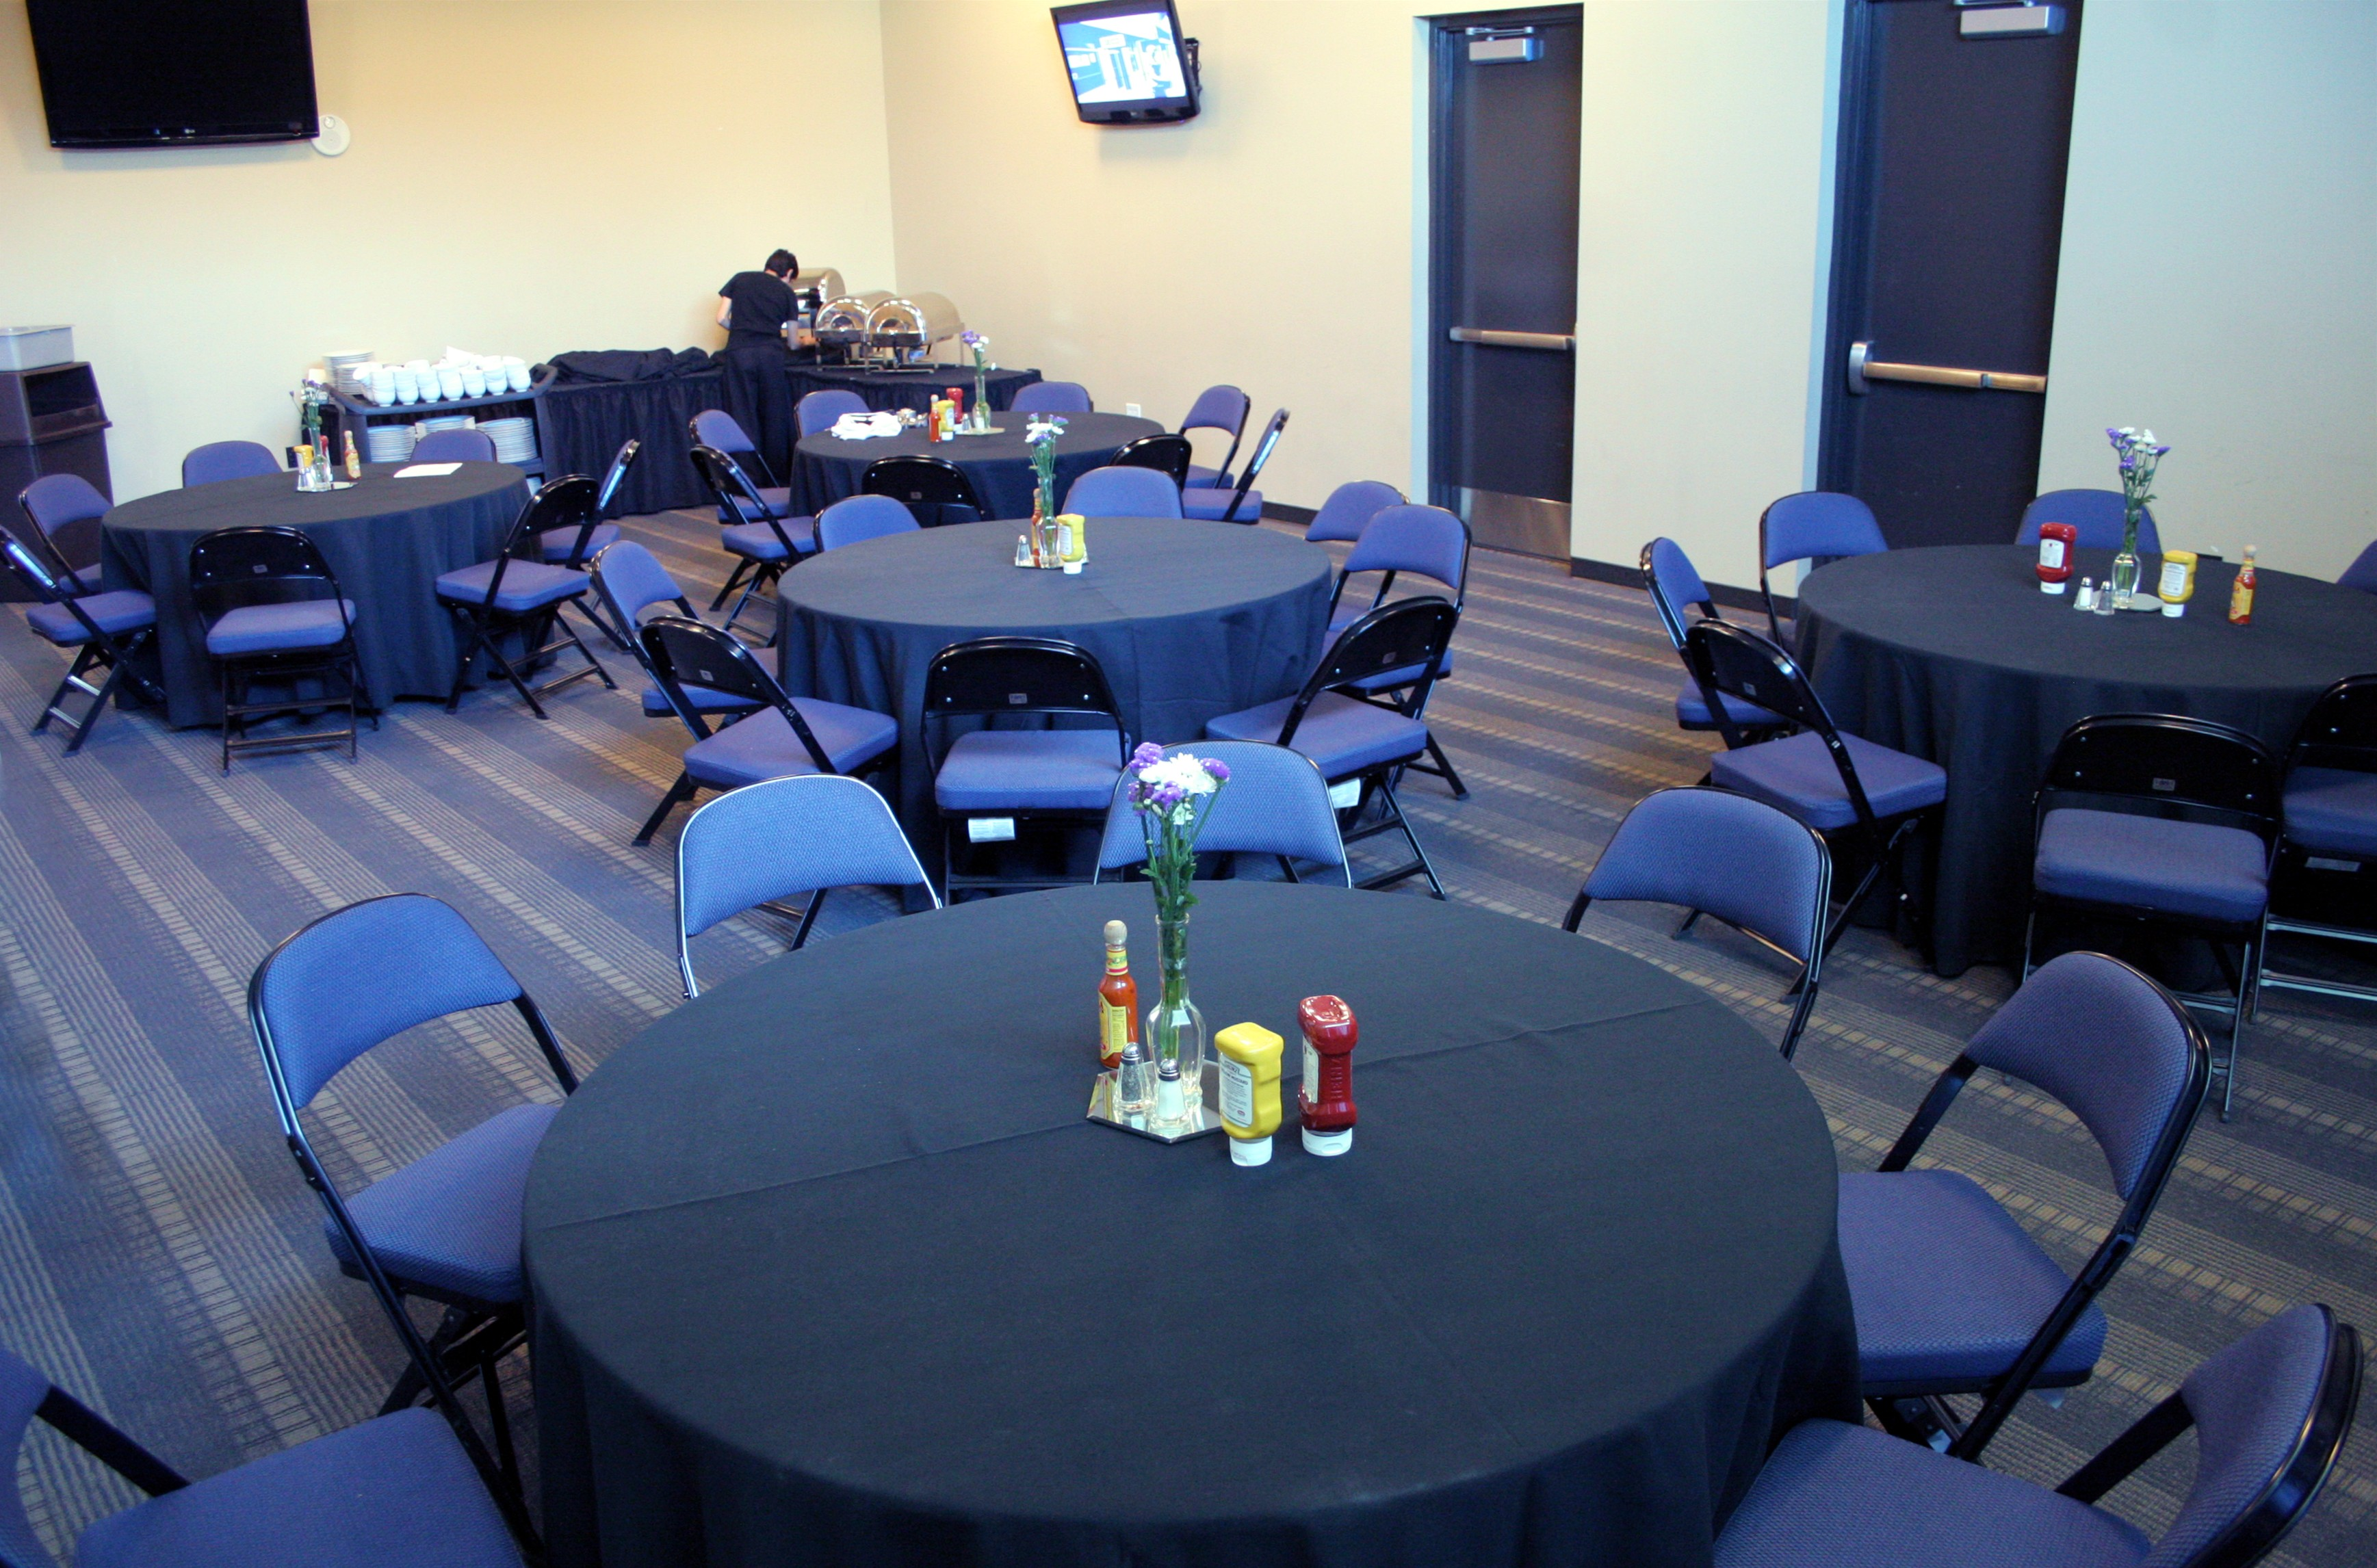 Allen Event Center has two meeting rooms that can be combined for nearly 900 square feet of meeting space that can accommodate between 60 and 100 people in a banquet, classroom or boardroom set-up